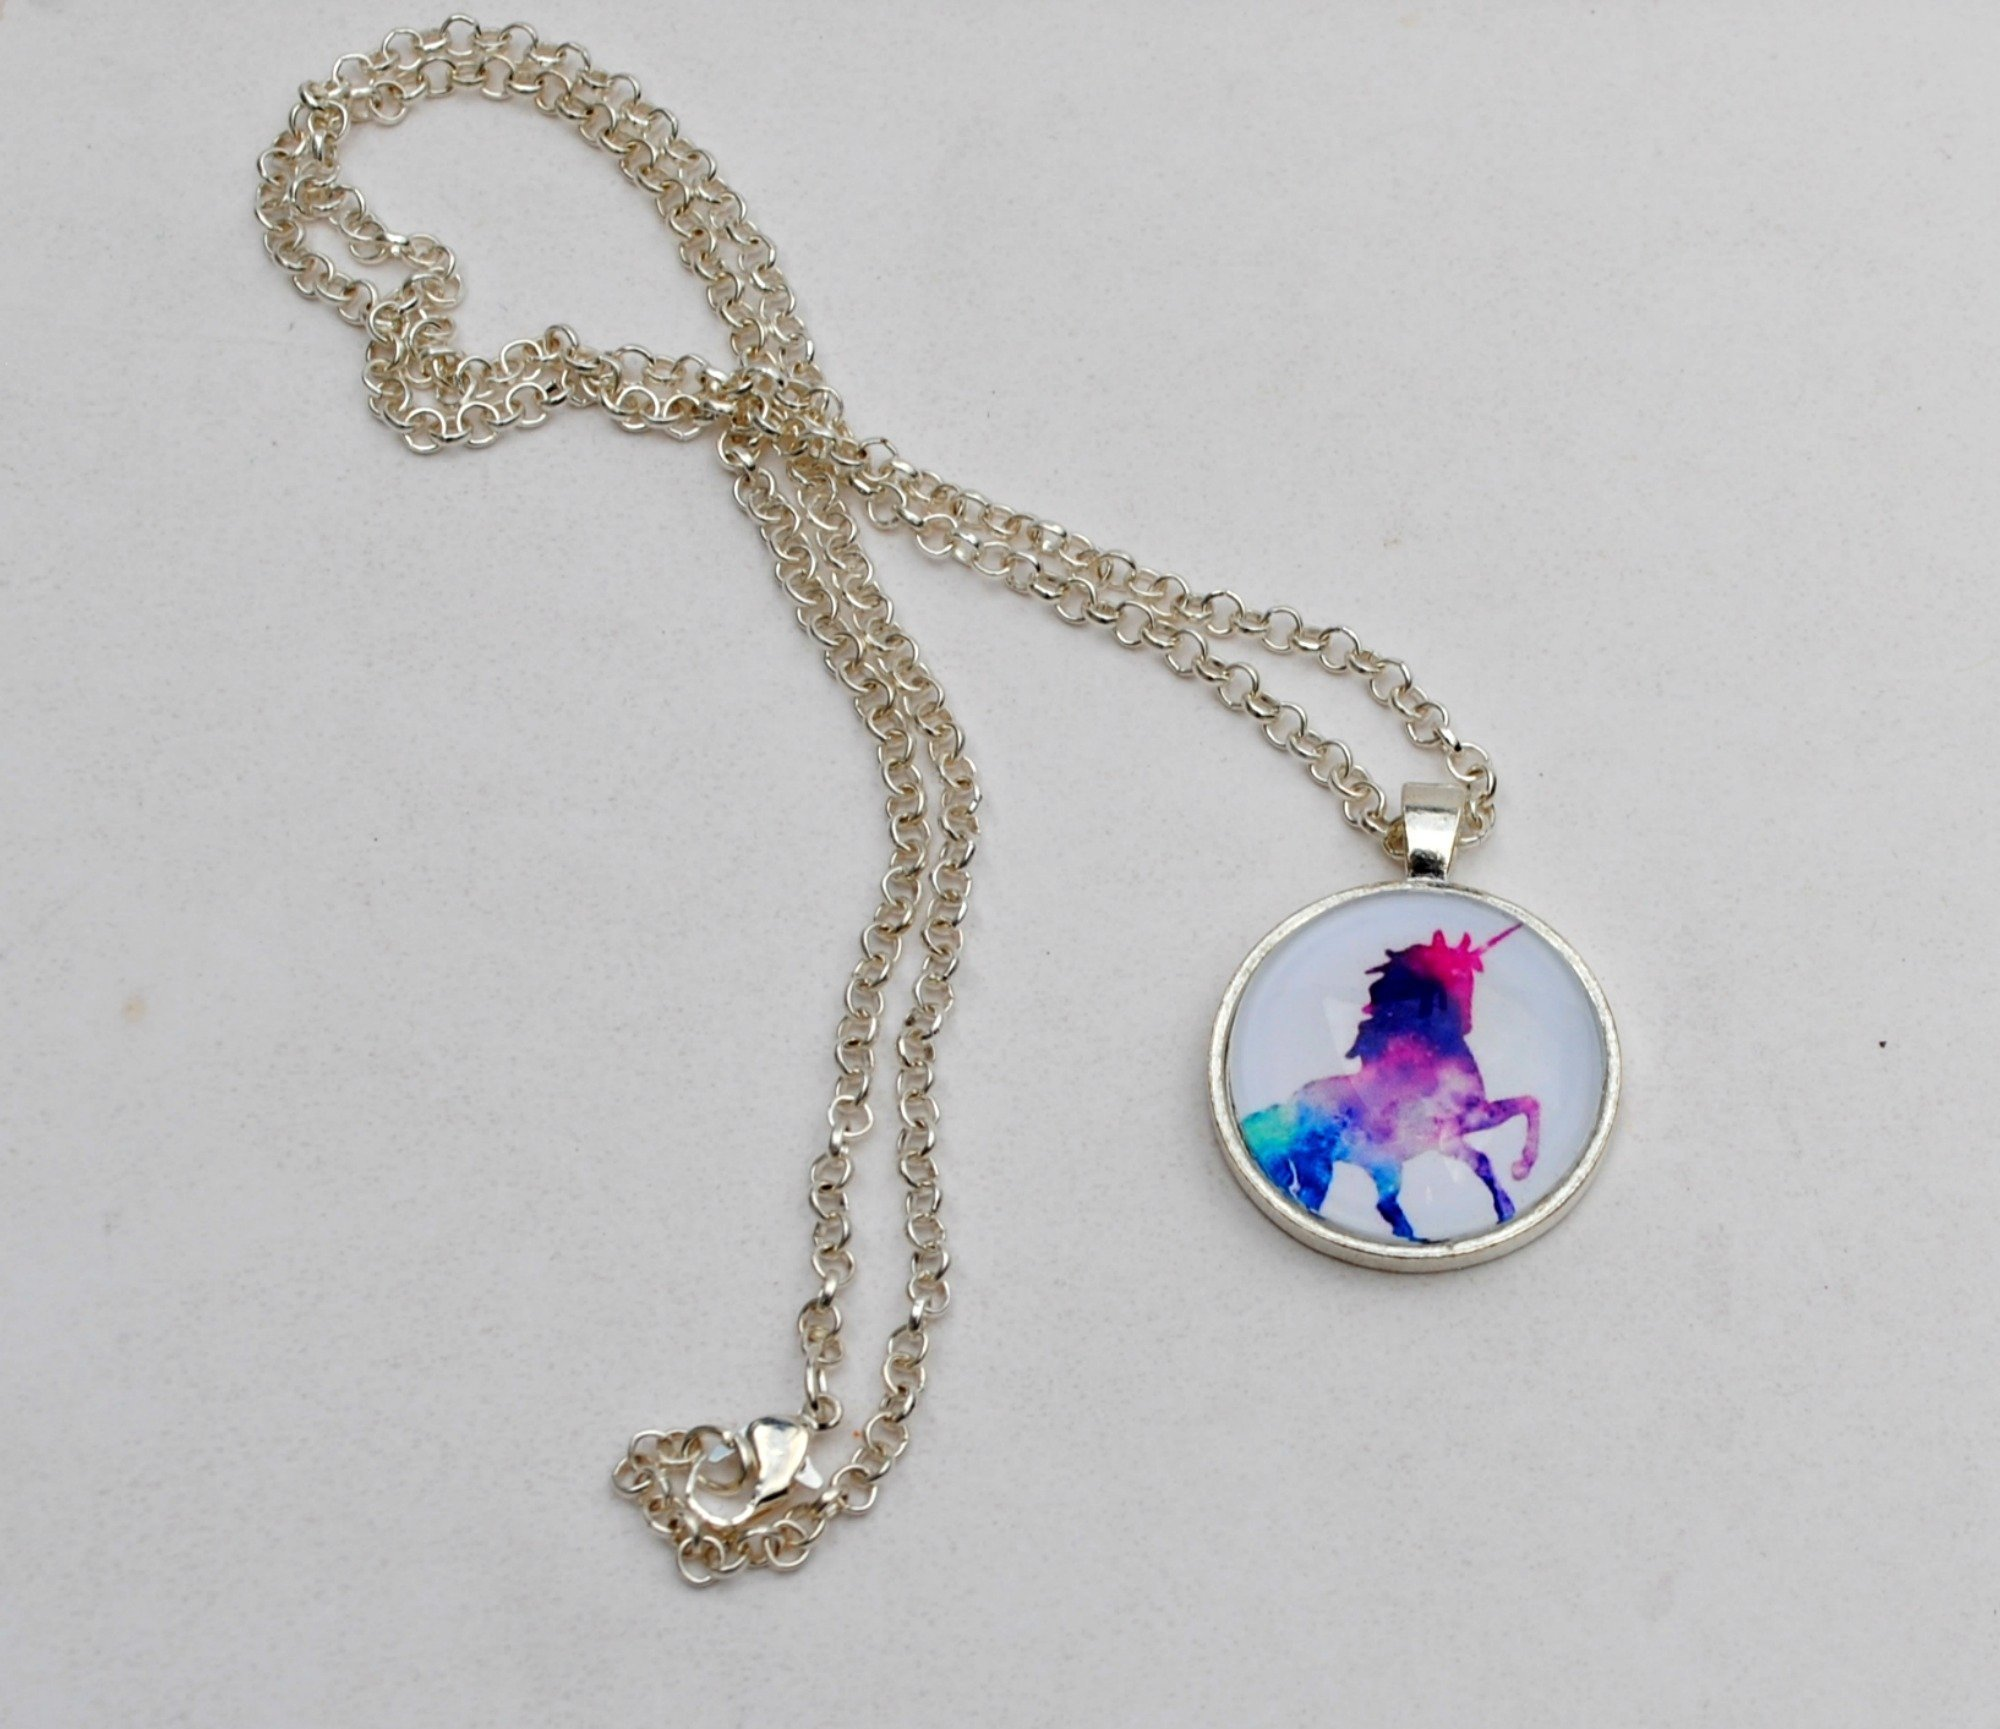 Magical Rainbow Unicorn Glass Dome Circle Pendant Necklace 24 Inch Chain Jewelry 6